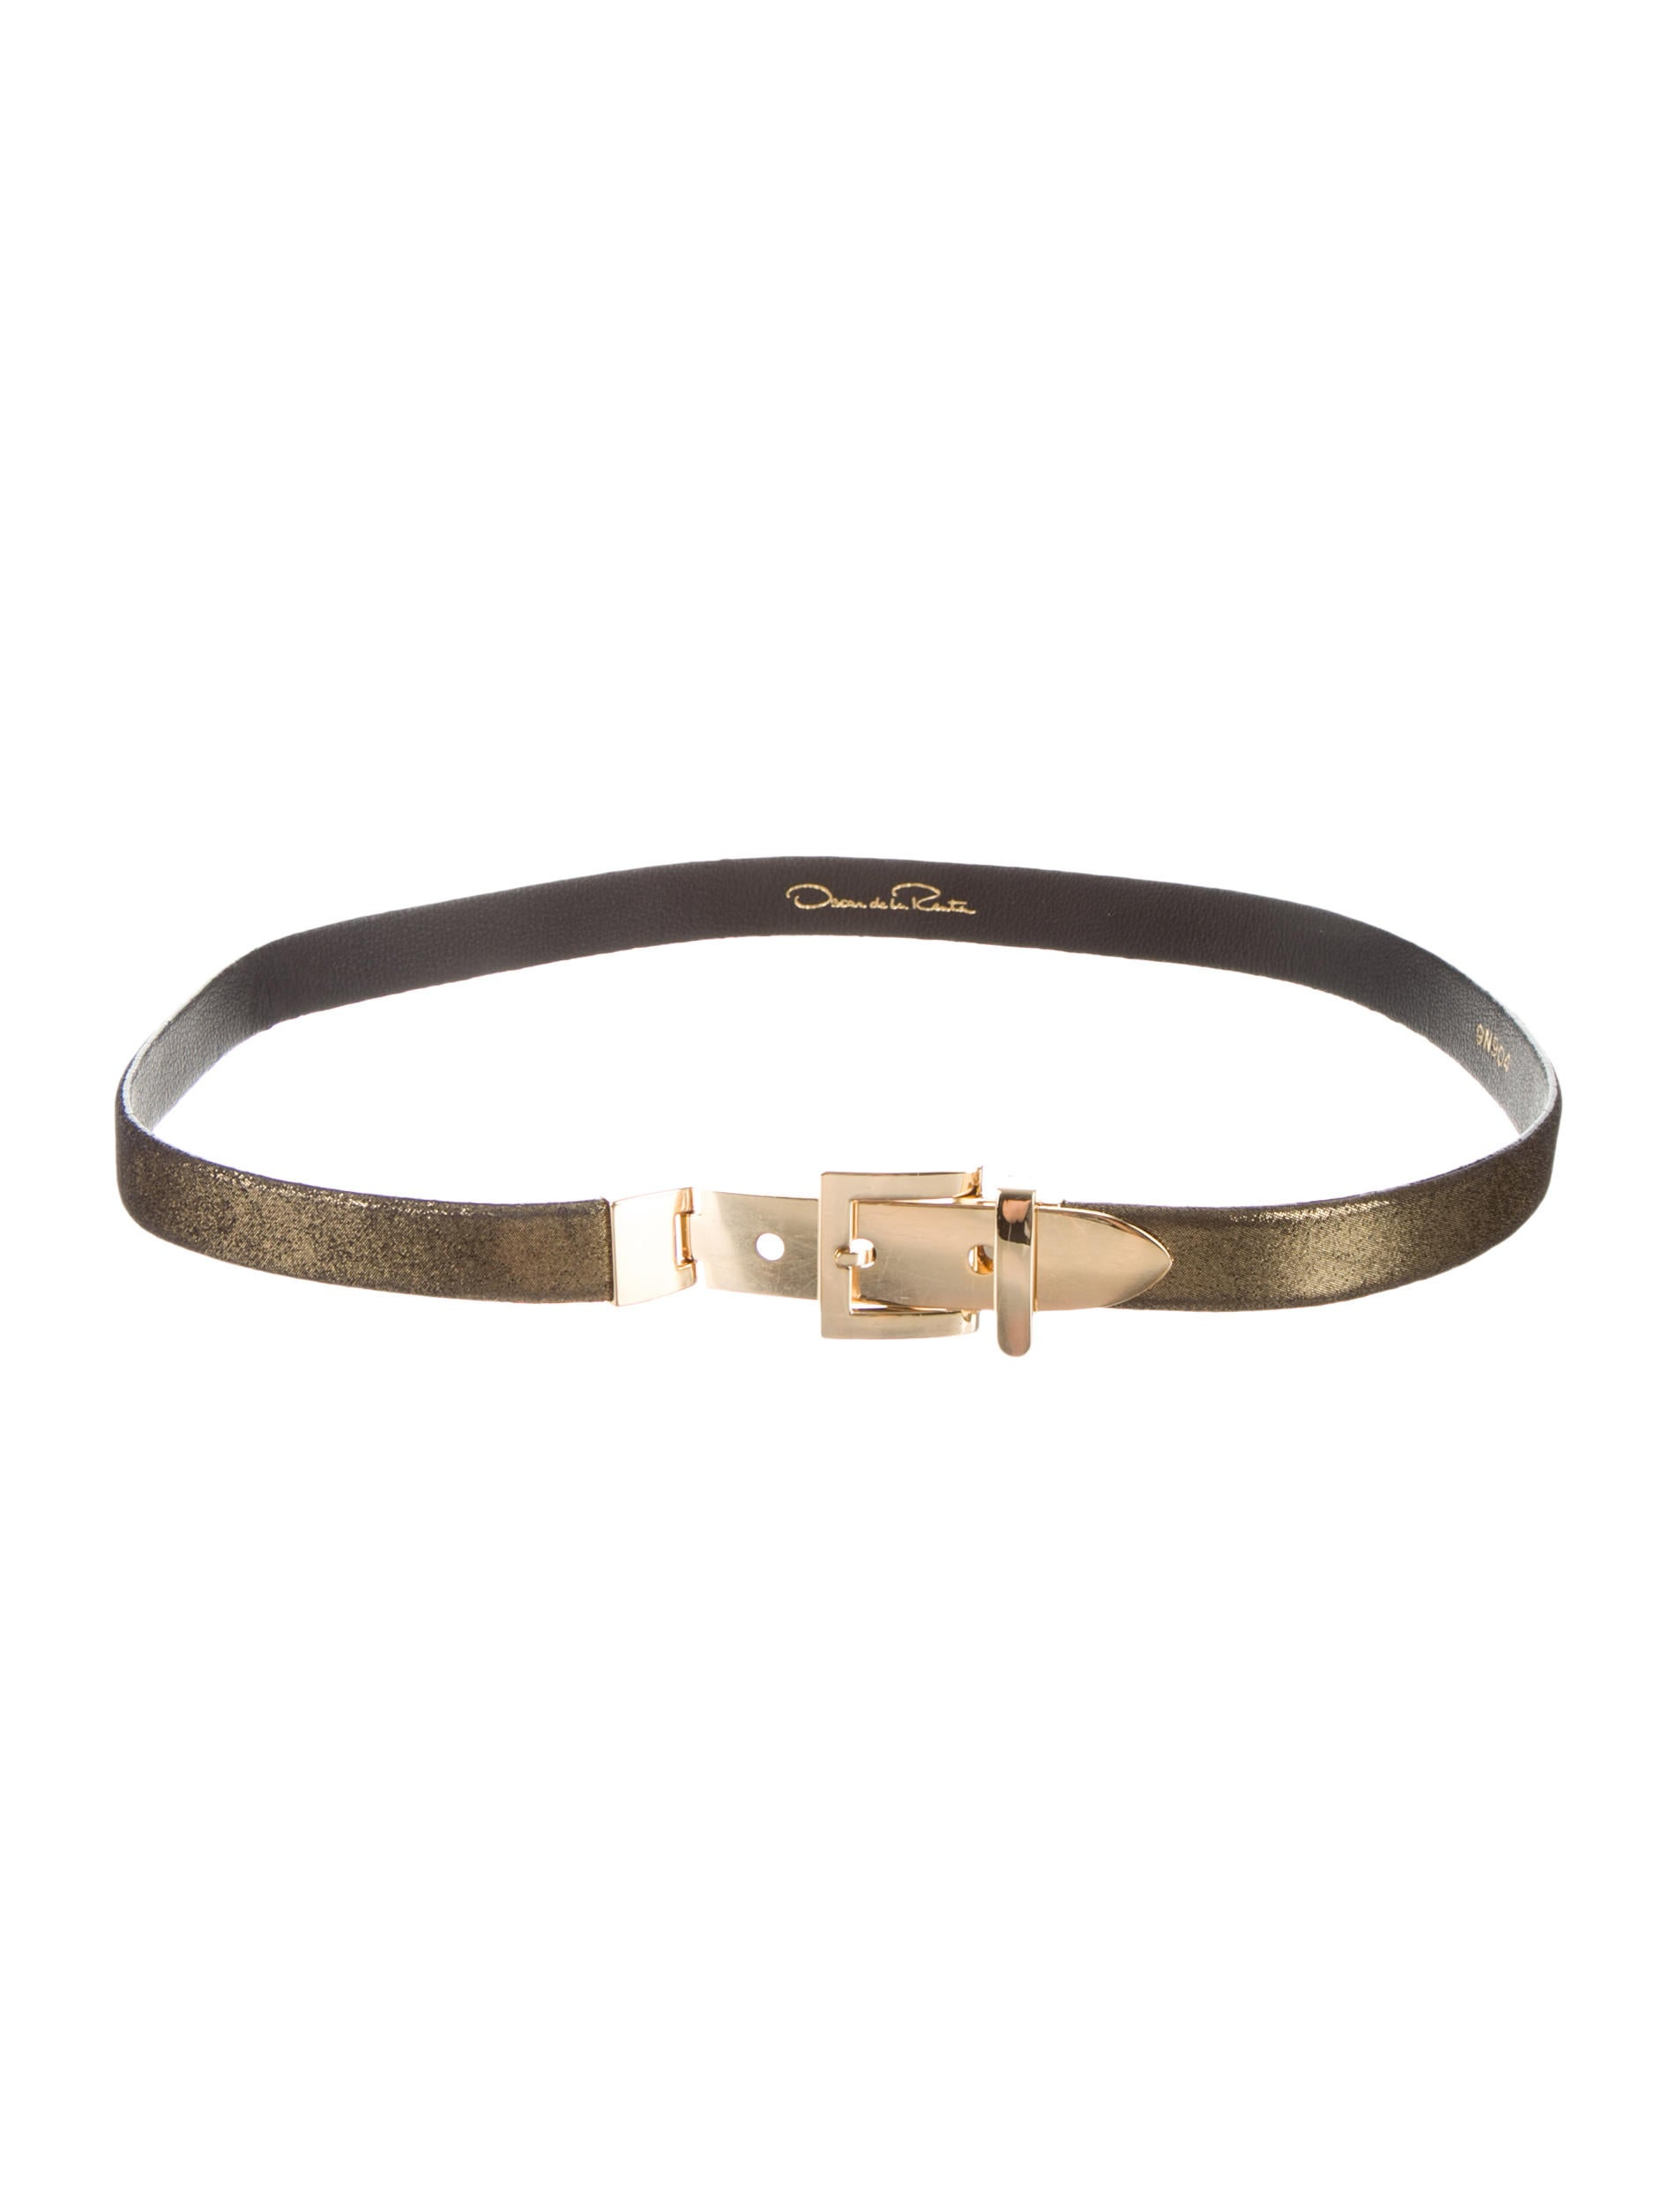 oscar de la renta metallic leather belt accessories